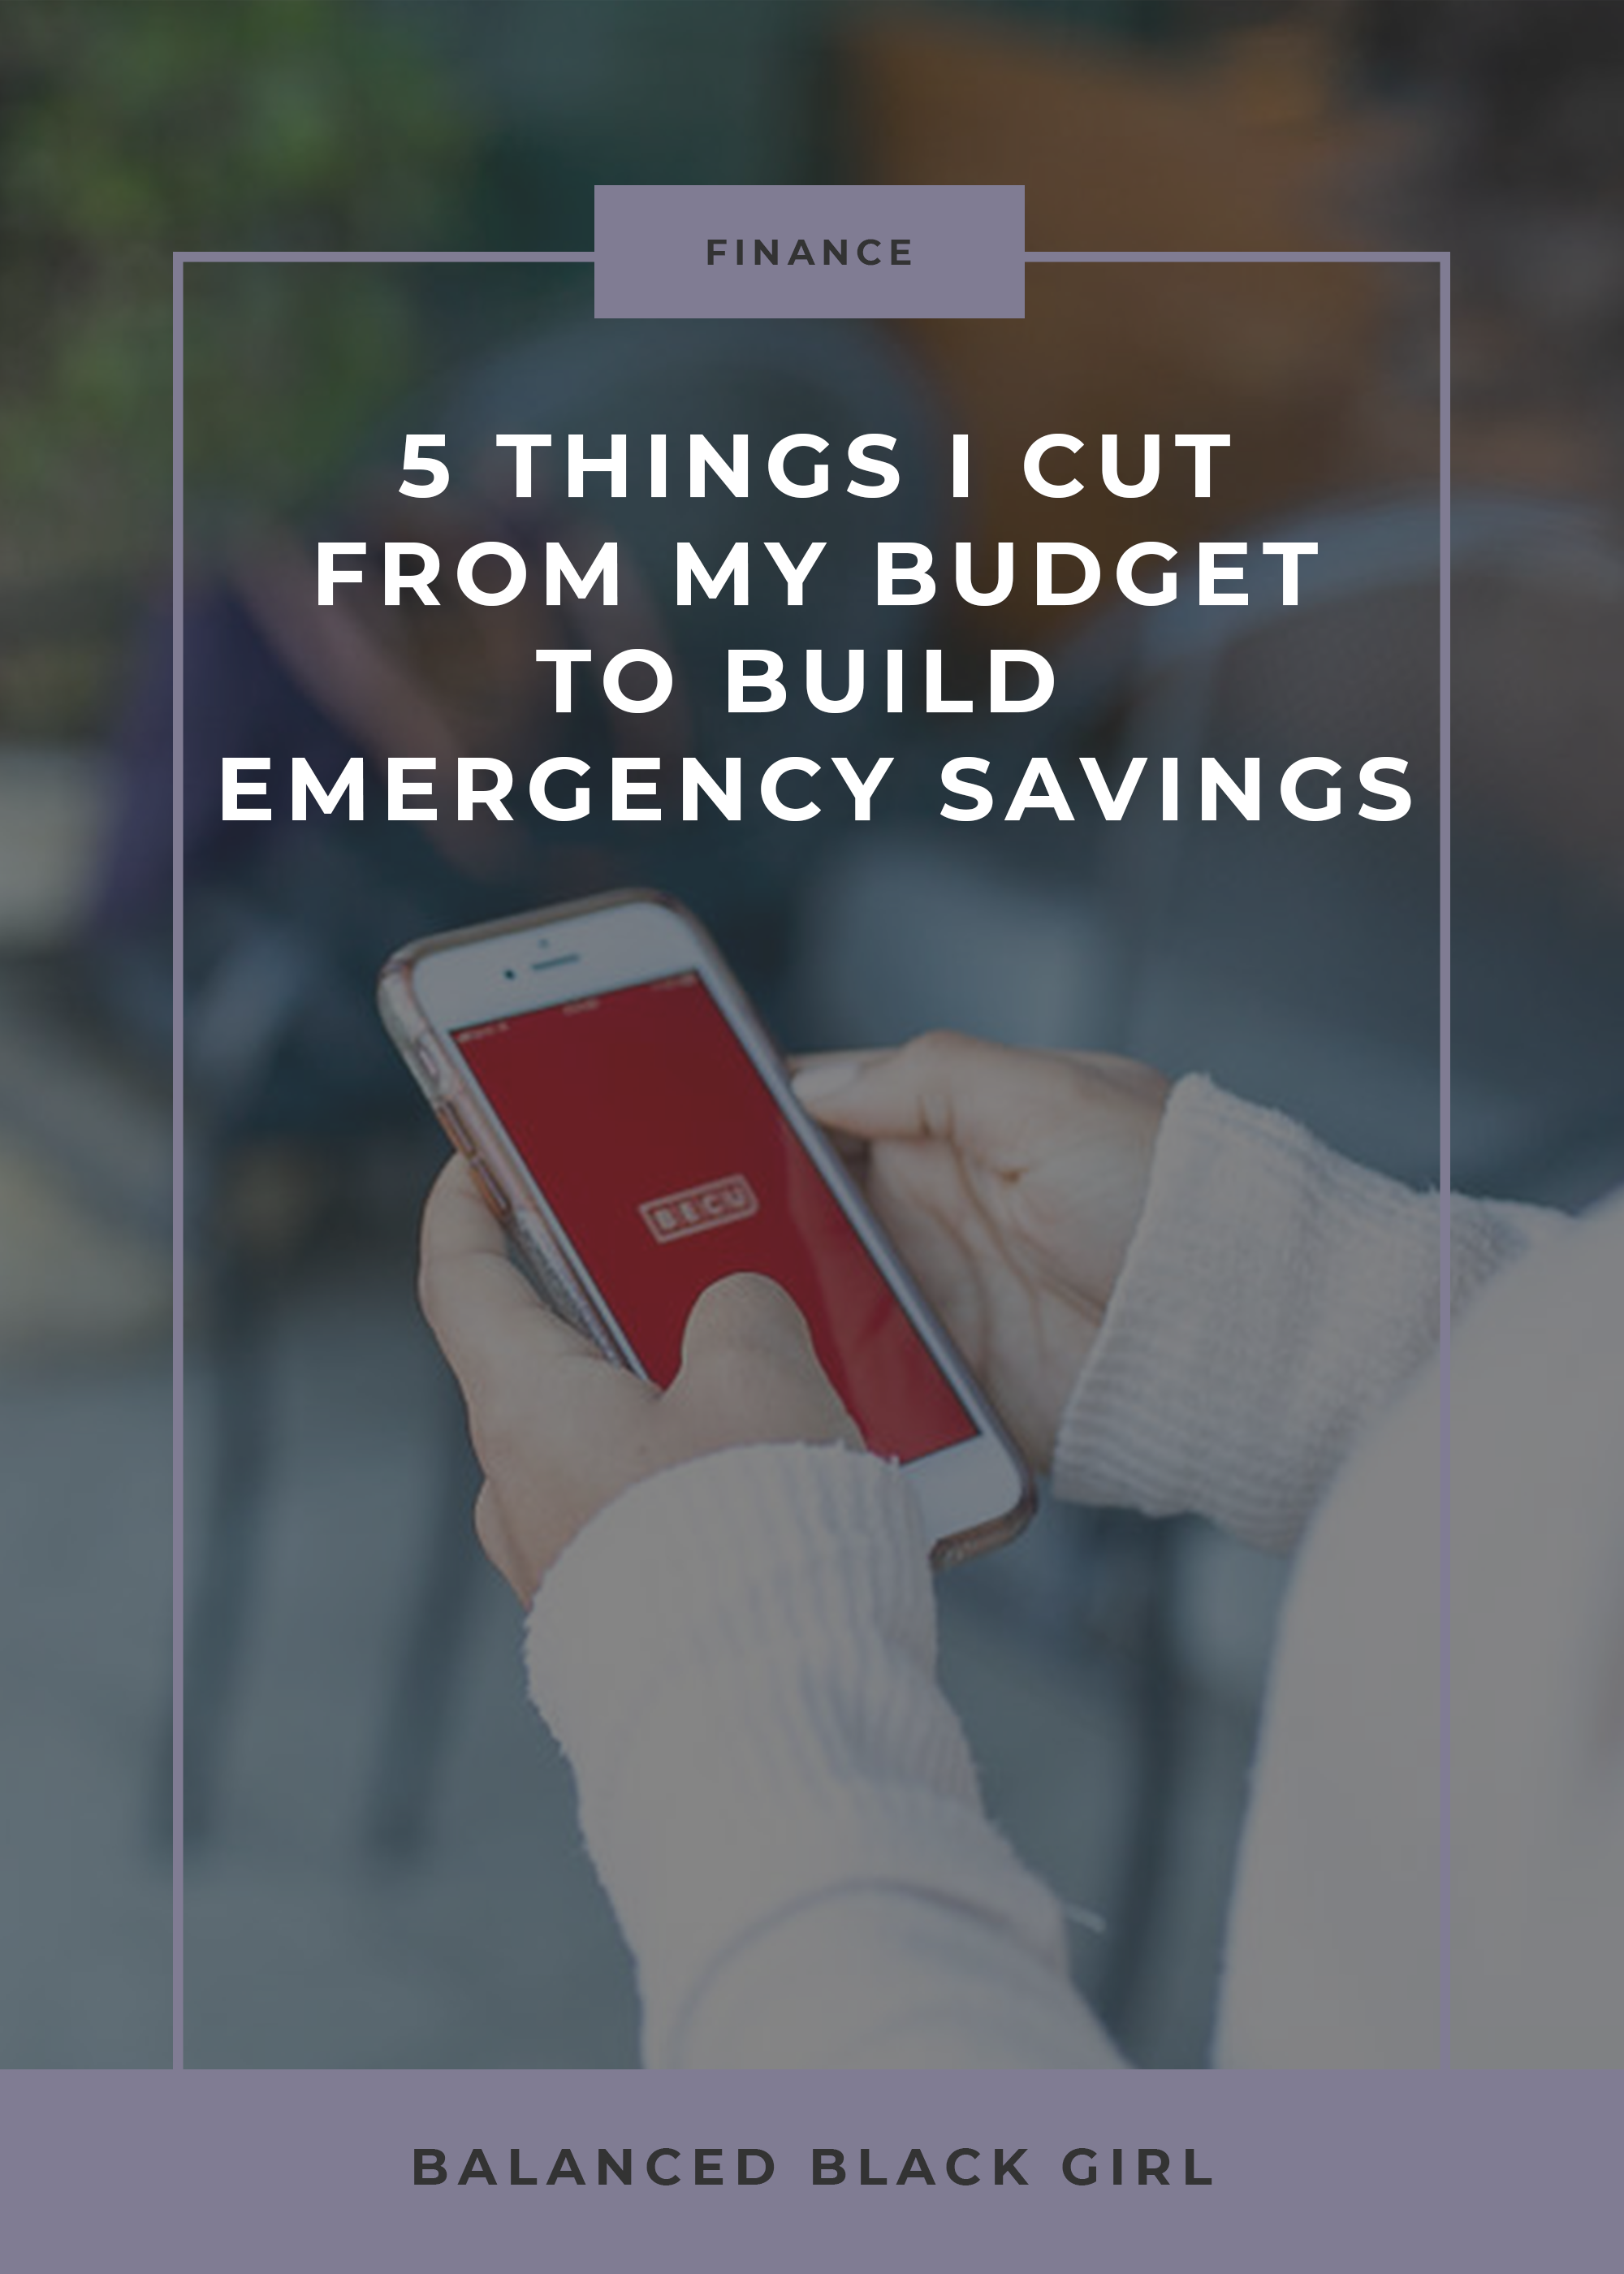 Want to boost your savings, but don't know where to start? Check out these five things you can cut from your budget to build emergency savings.